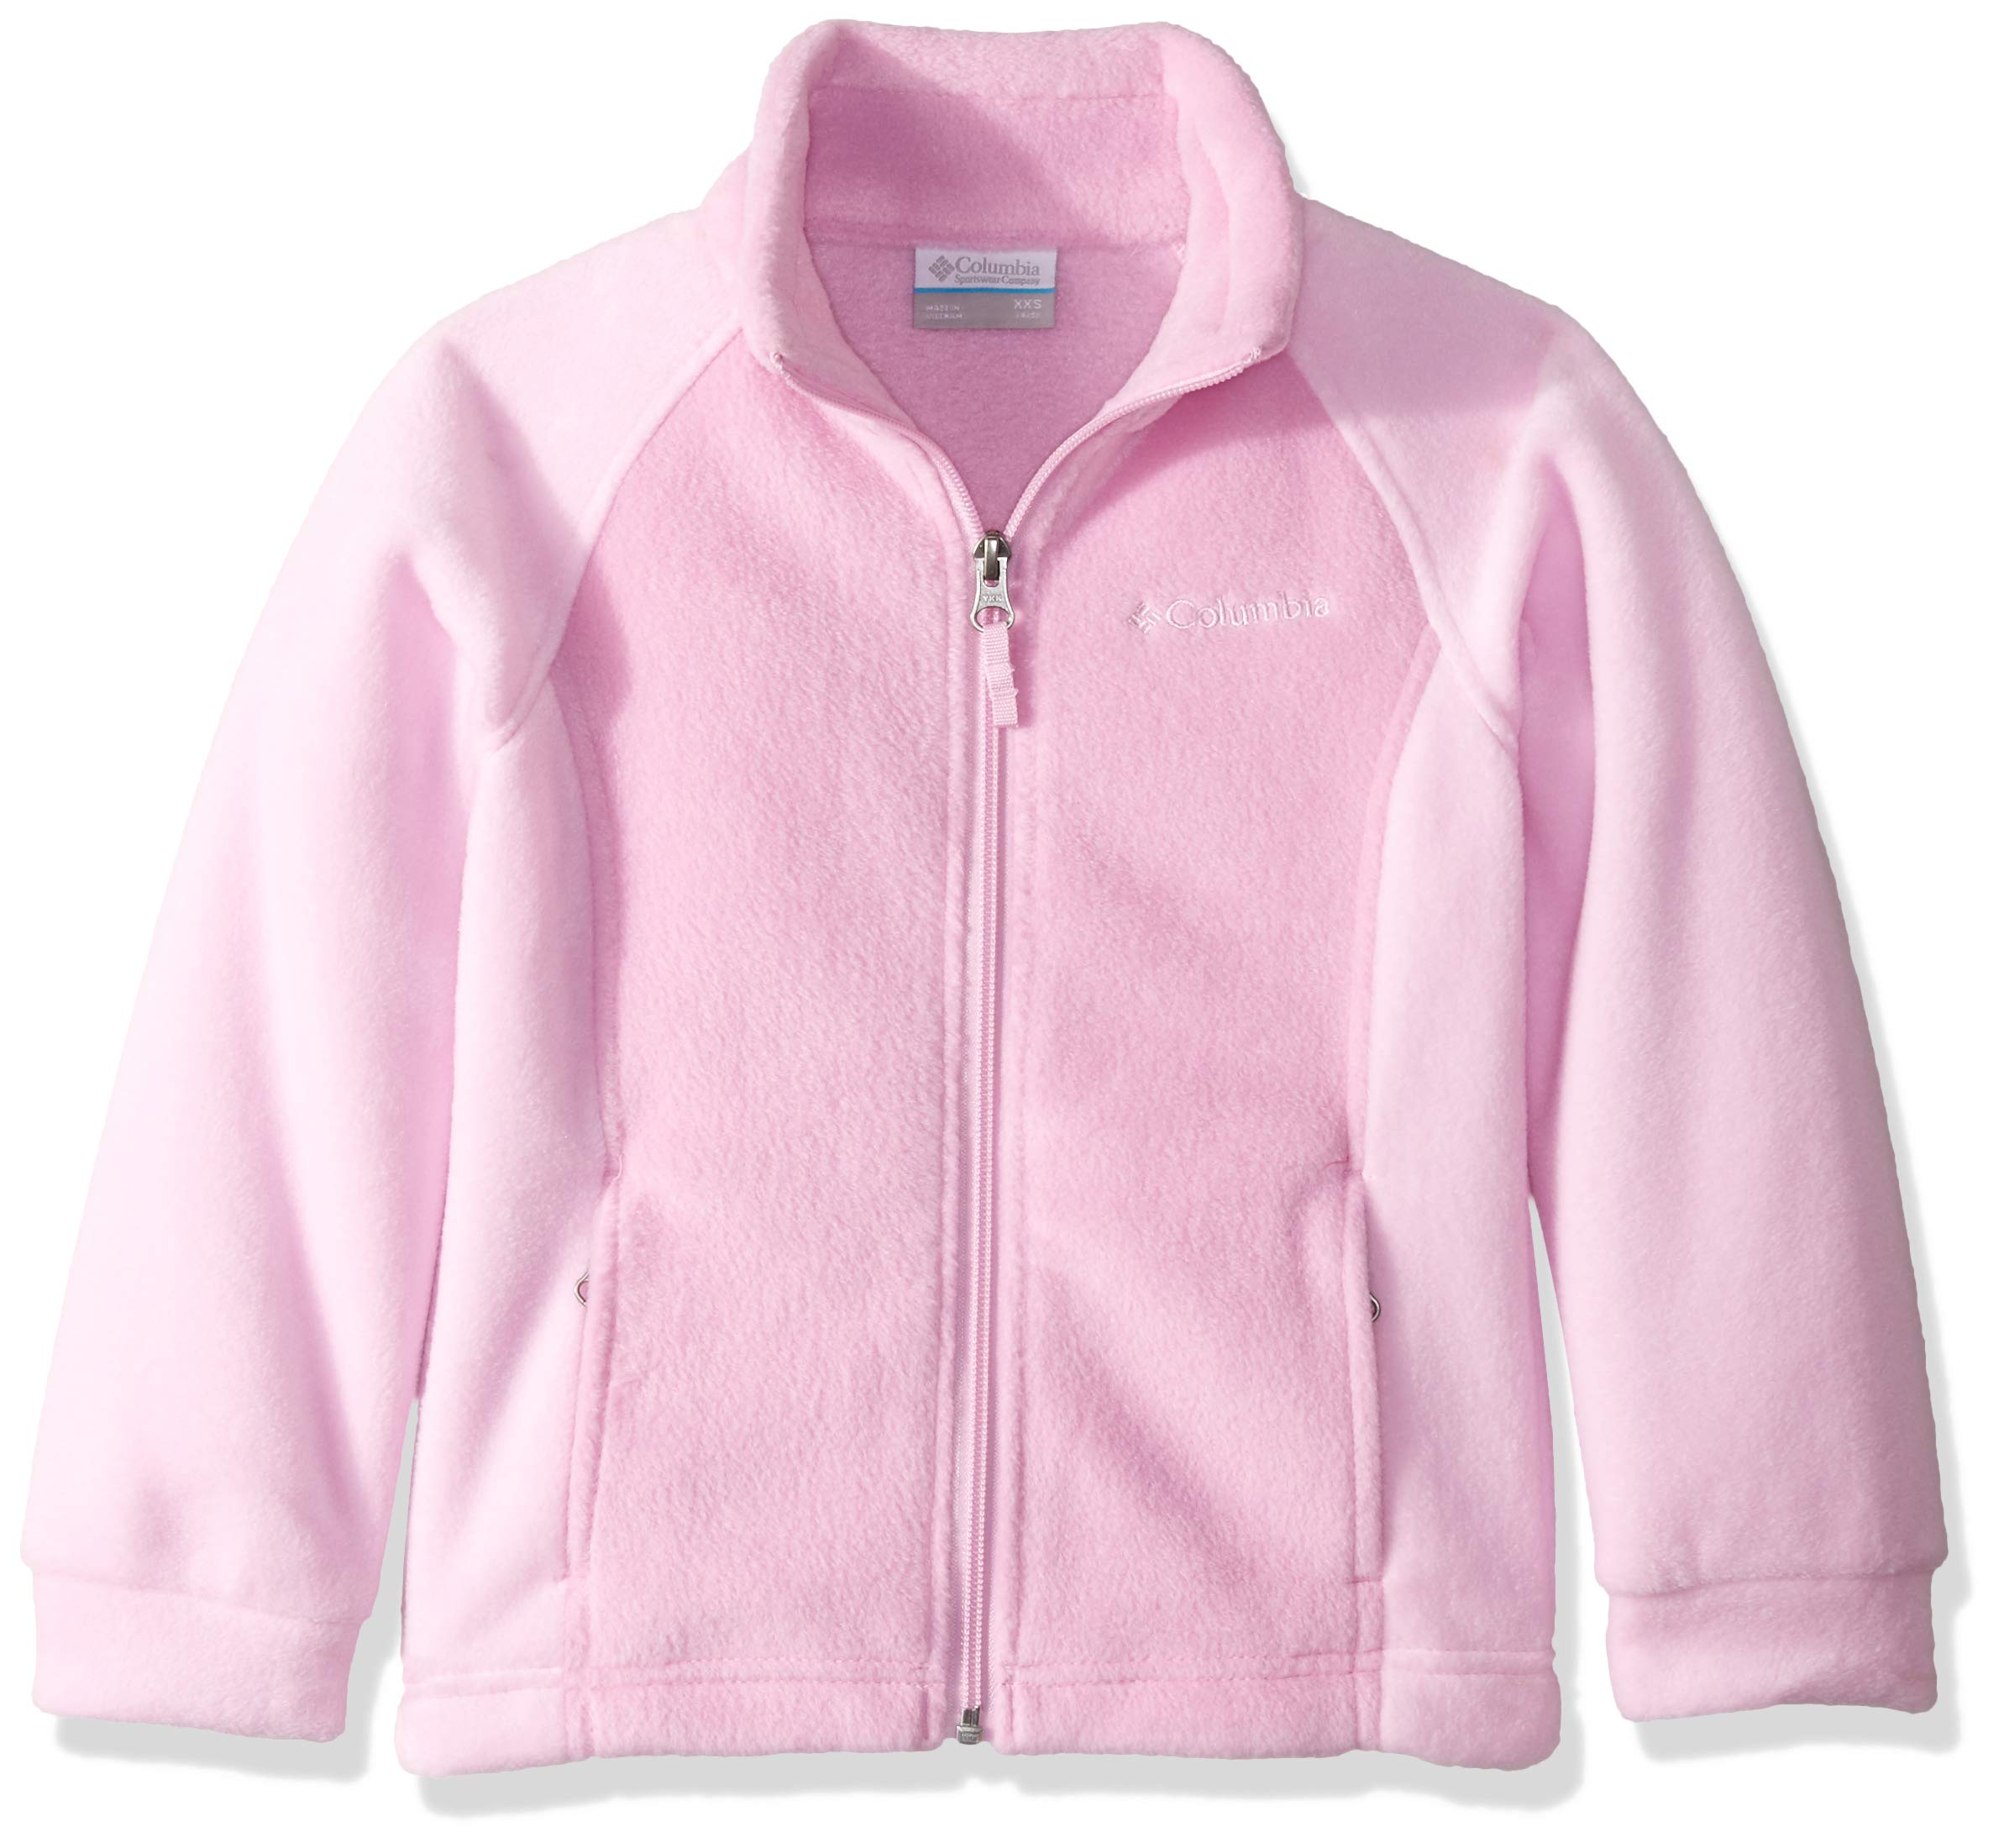 bc27a37920d6 Best Rated in Girls  Outdoor Recreation Fleece Jackets   Coats ...